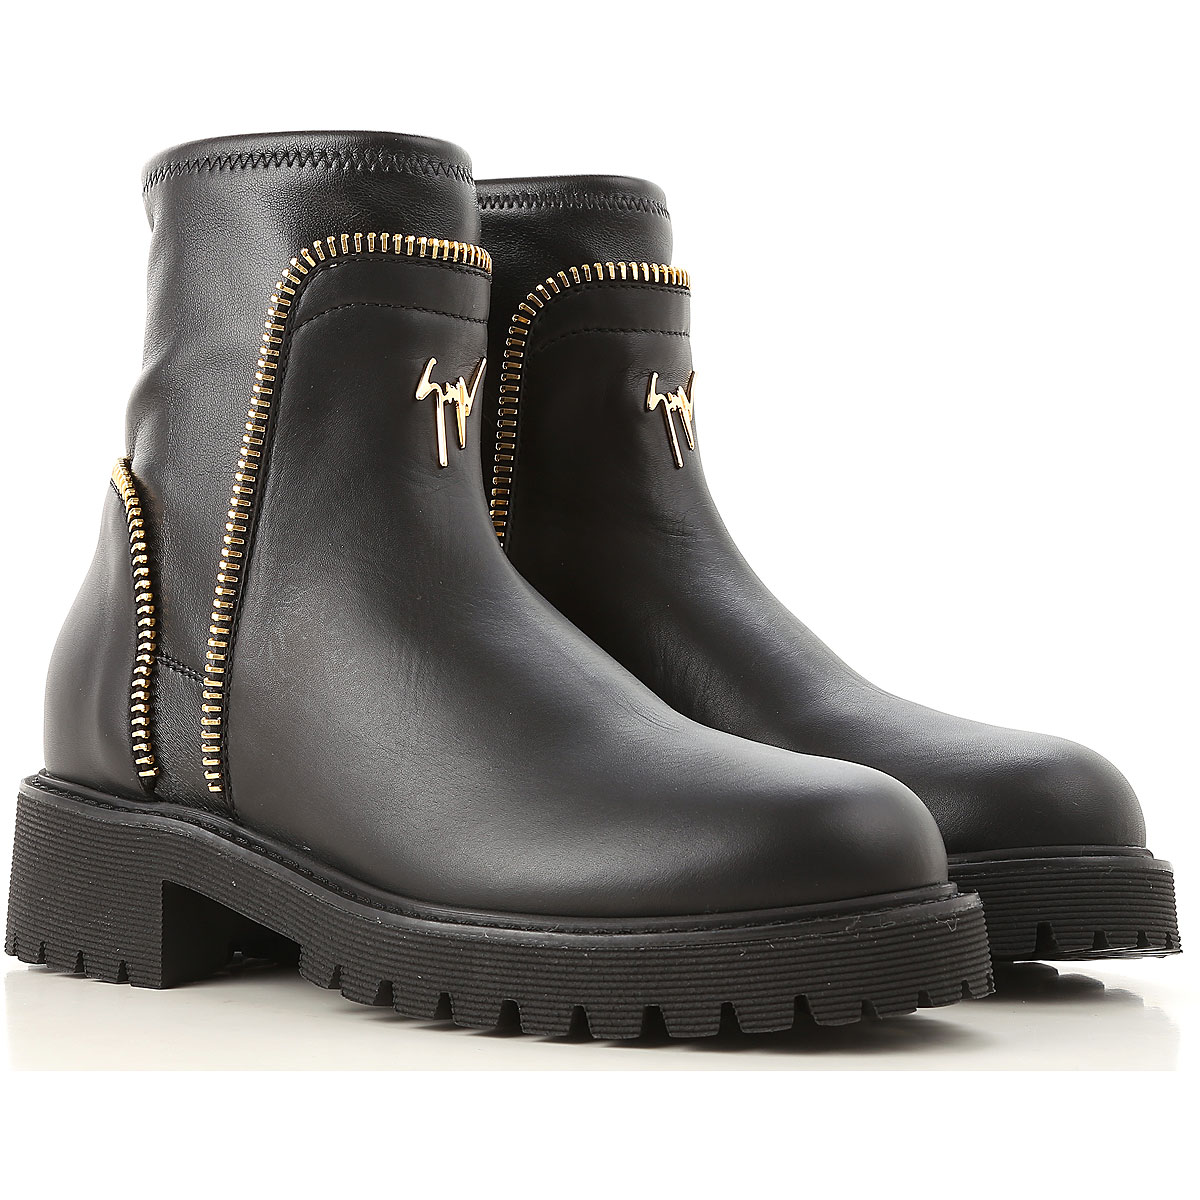 Image of Giuseppe Zanotti Design Boots for Women, Booties, Black, Leather, 2017, 10 11 5 6 6.5 7 8 8.5 9 9.5